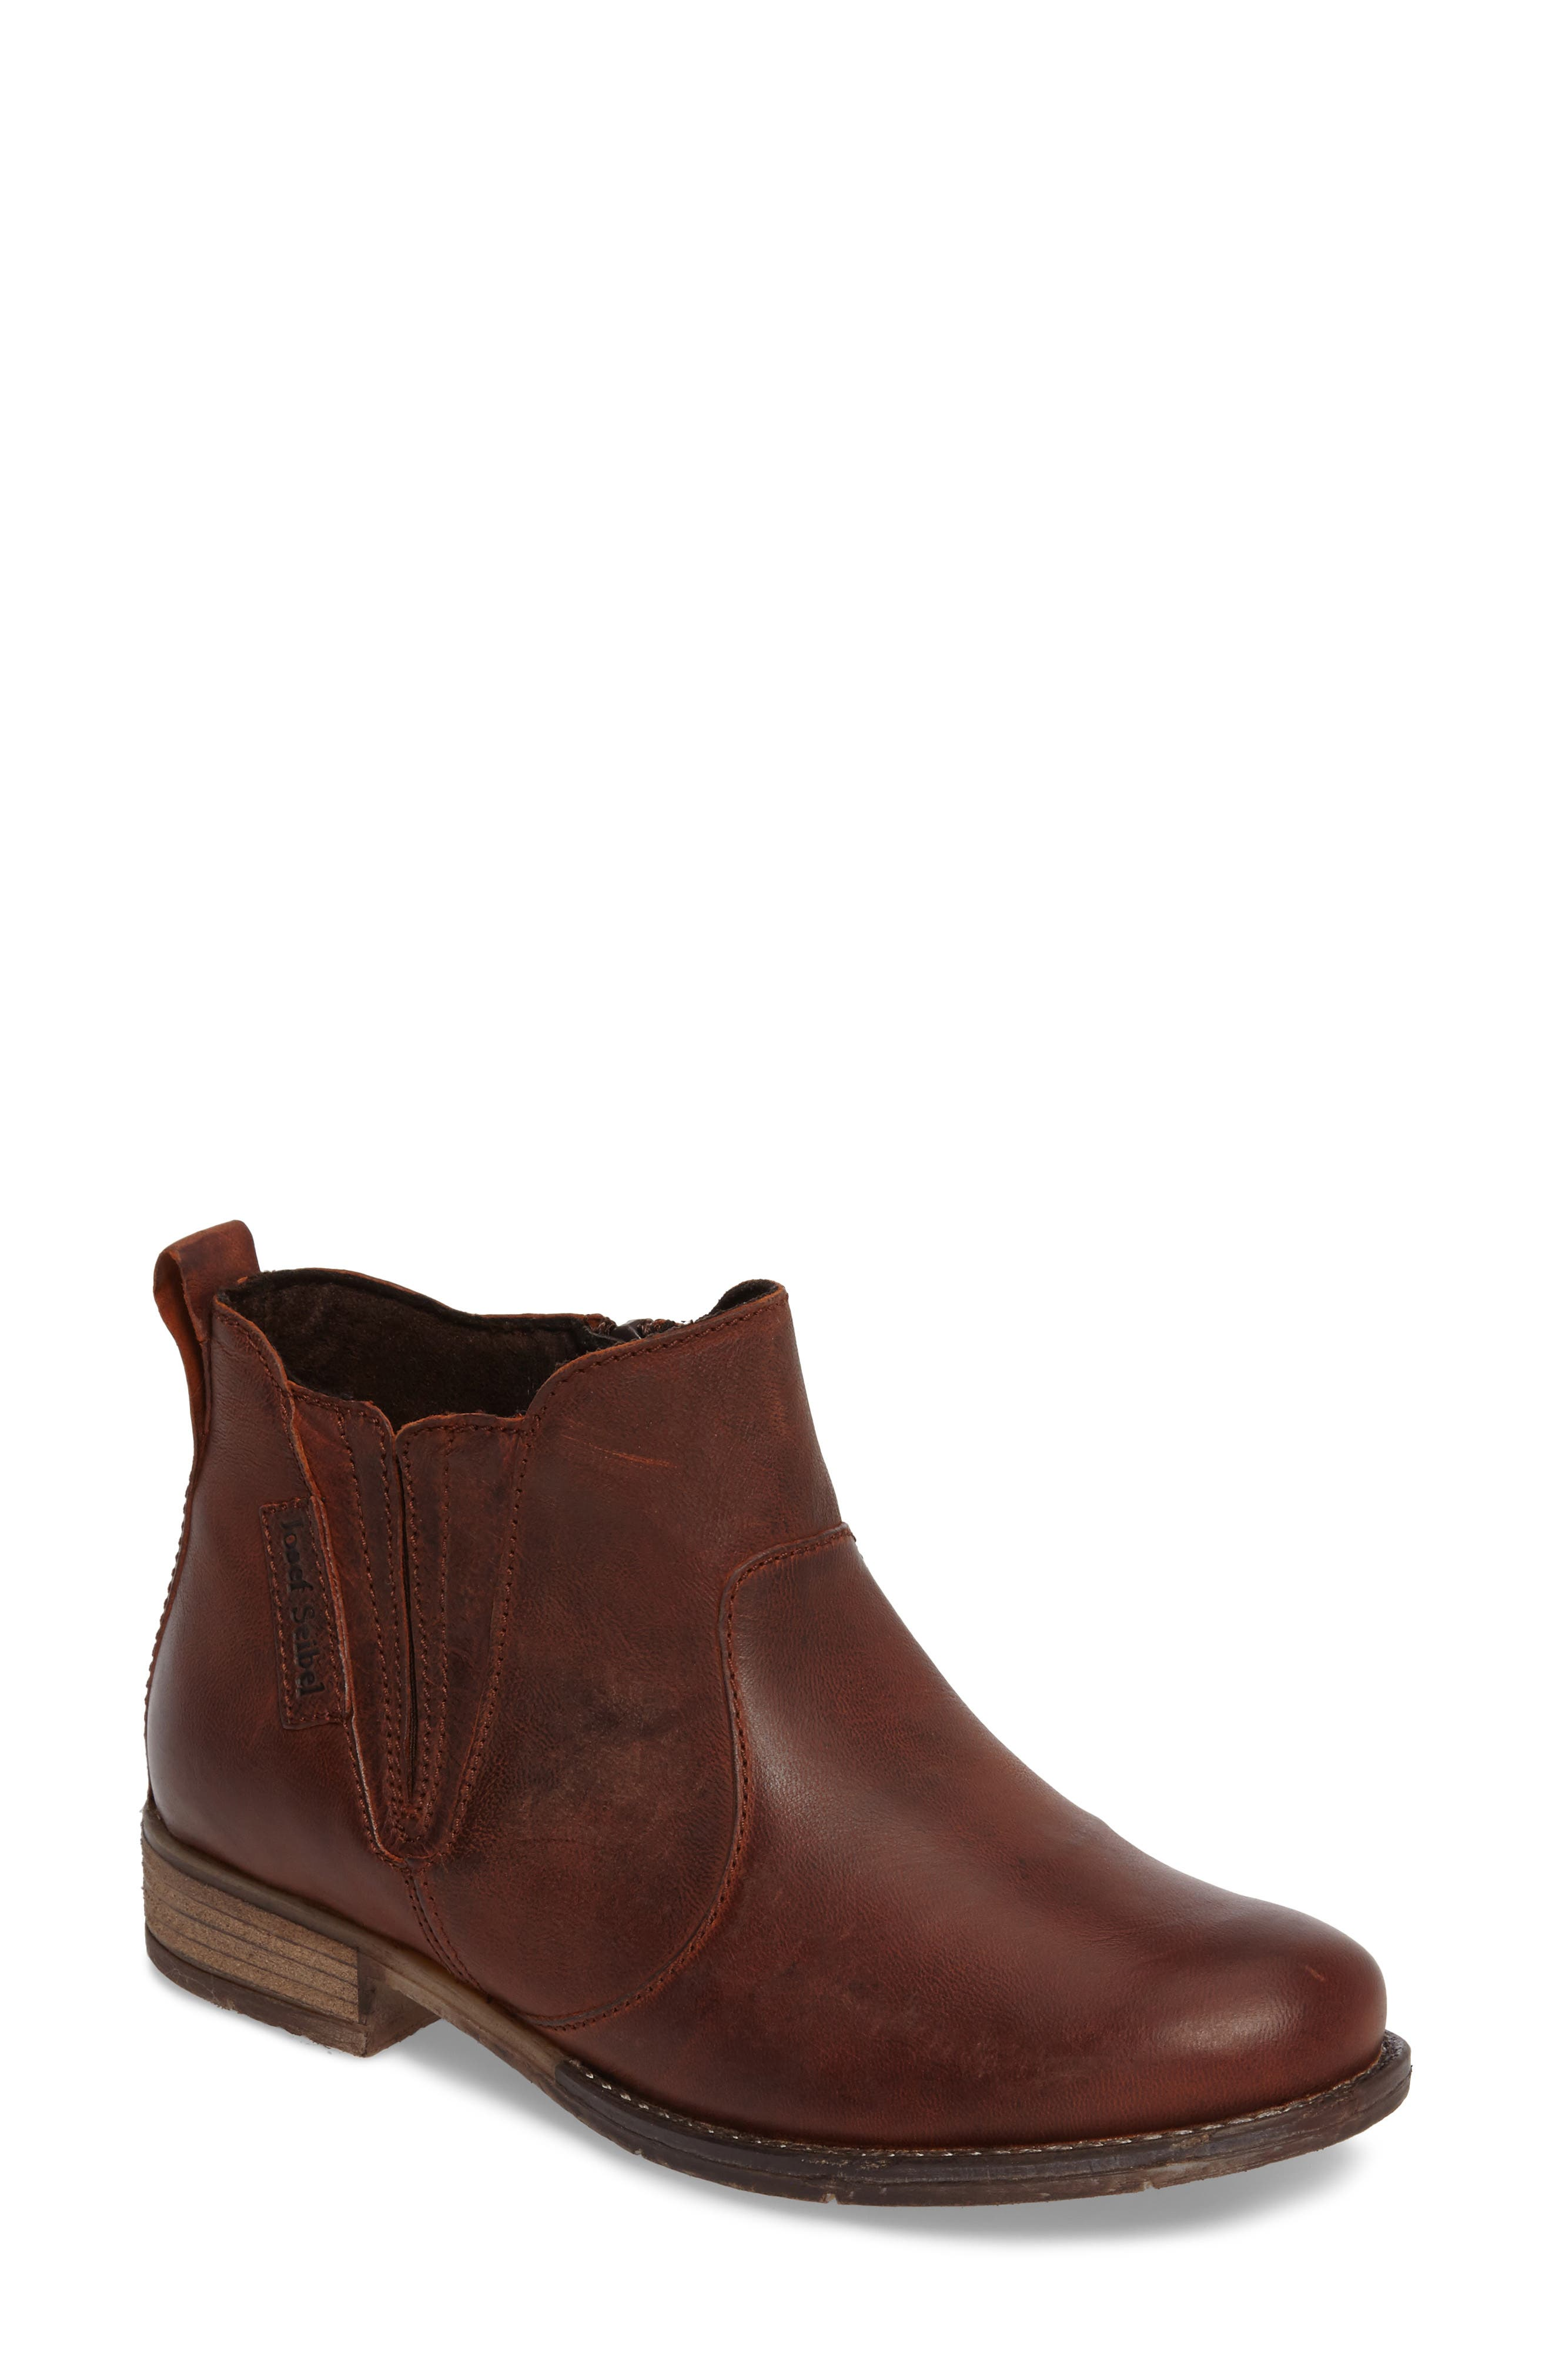 A Chelsea boot with stretchy side-goring insets is cut from grainy distressed leather and set on a rough-finished heel for a comfortably broken-in look. Style Name: Josef Seibel Sienna 45 Chelsea Bootie (Women). Style Number: 5384805. Available in stores.